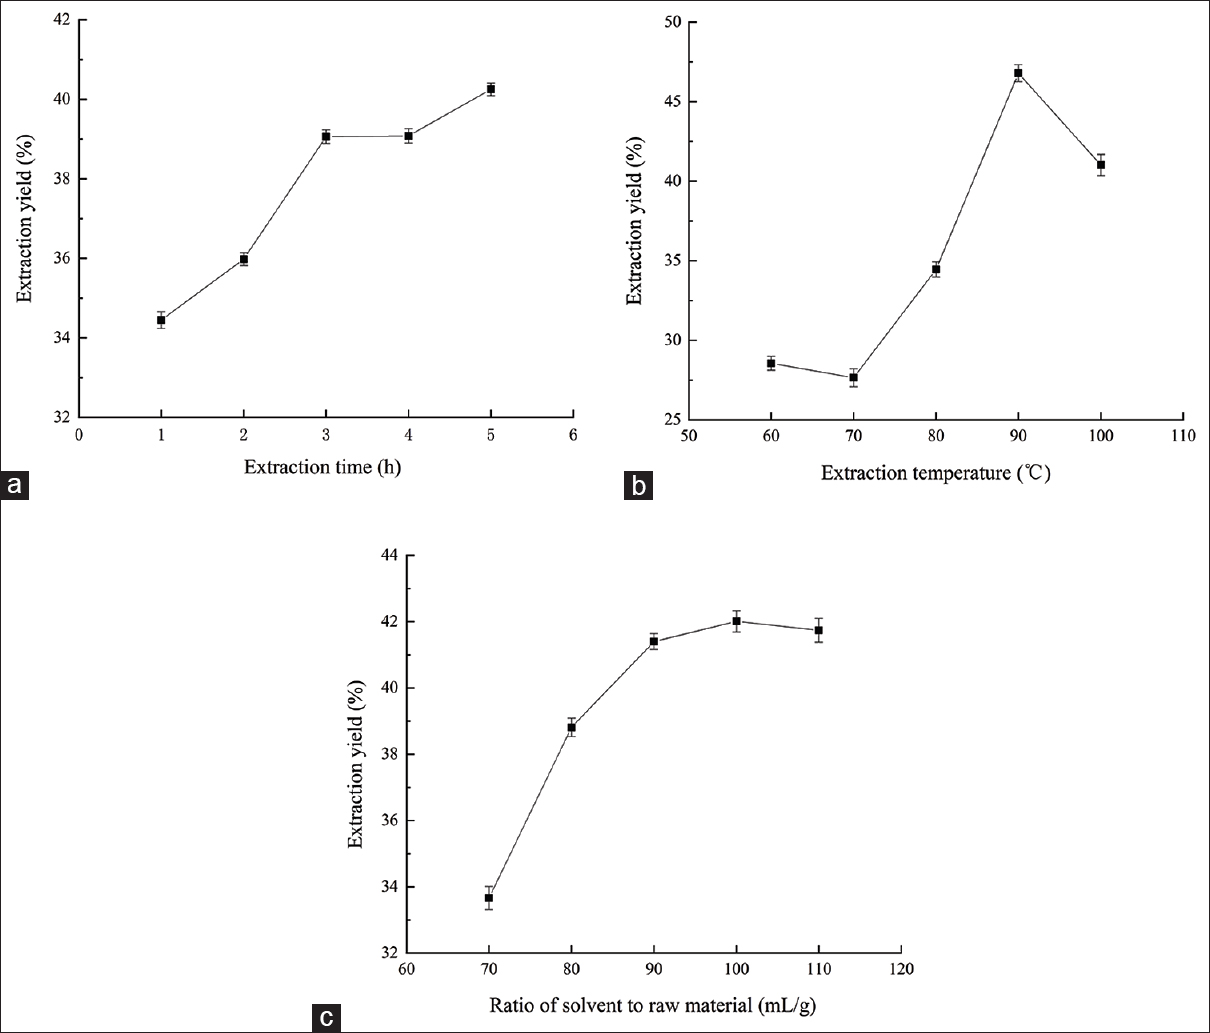 Figure 1: Effects of extraction time (a), extraction temperature (b), ratio of water to raw material (c) on the extraction yield of polysaccharides of <i>Grateloupia filicina</i>